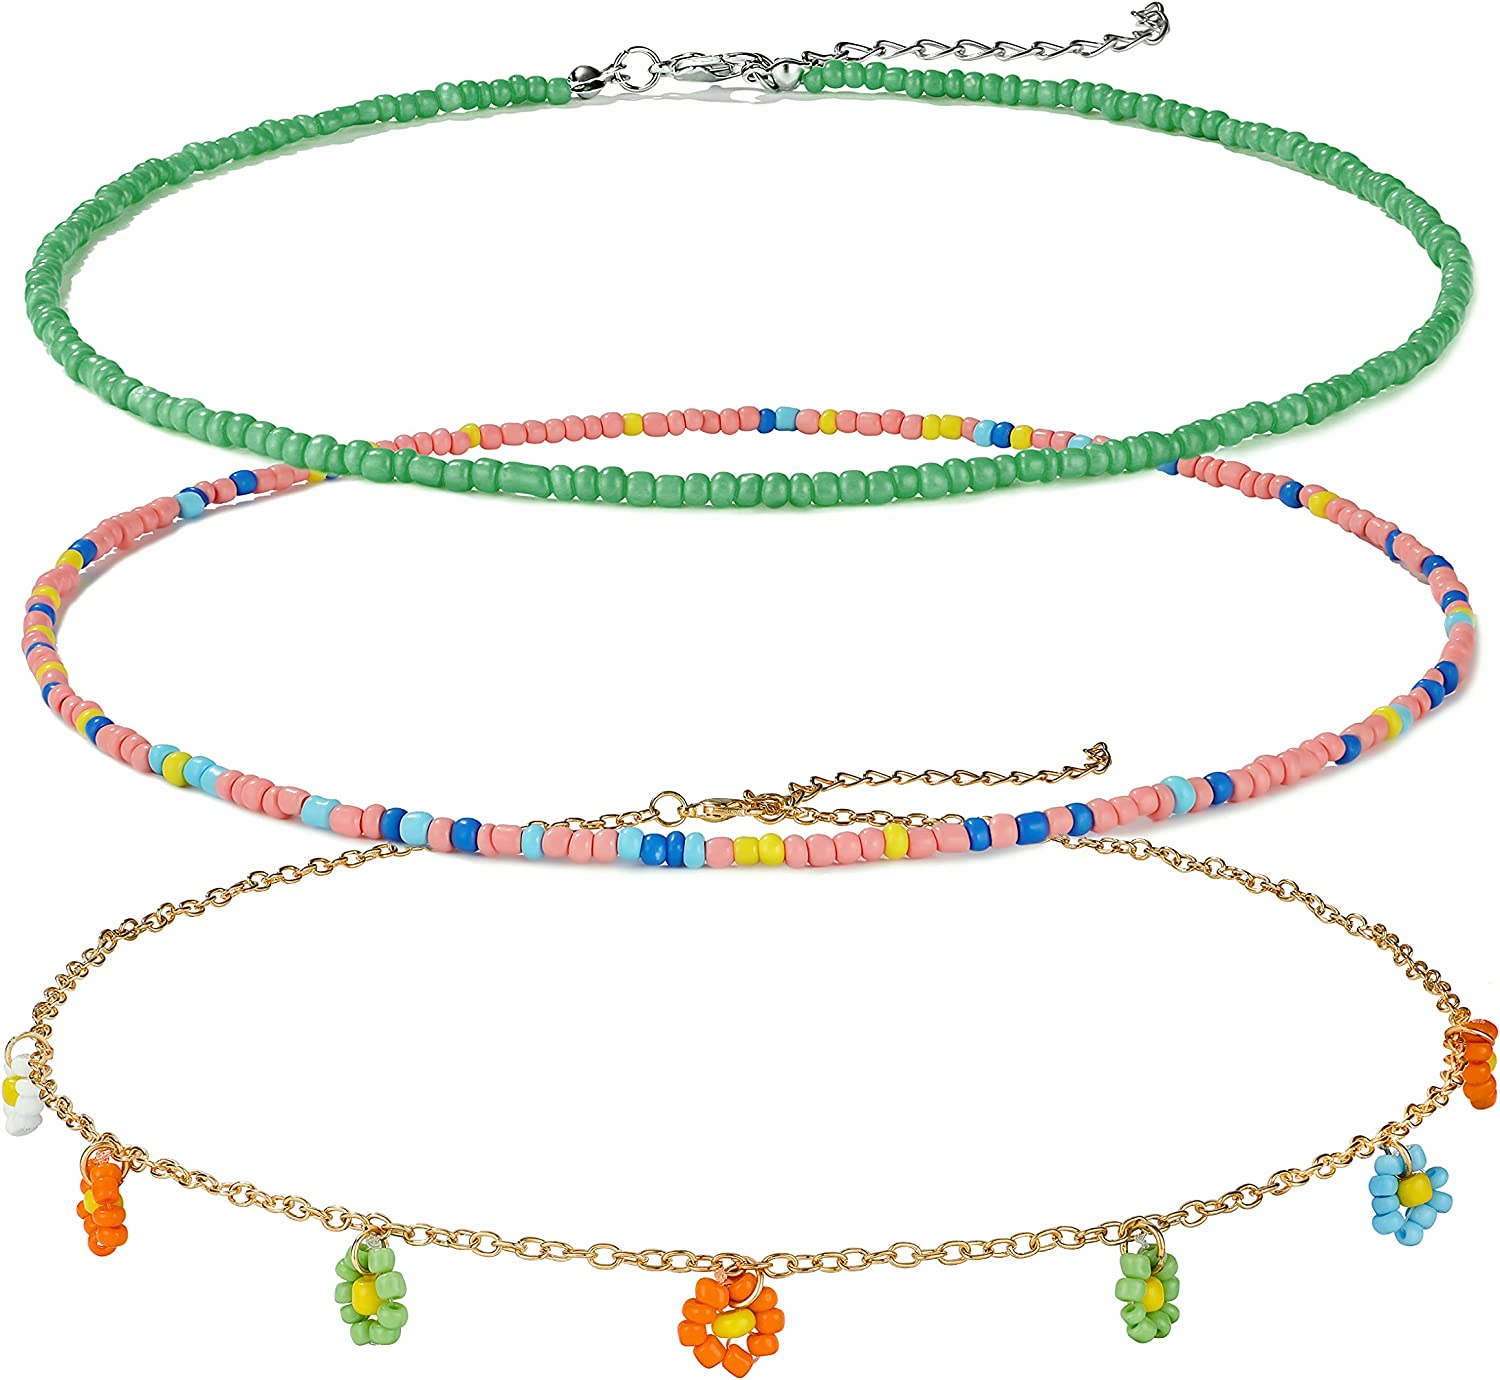 Buleens Seed Beaded Necklace Set For Women Summer Colorful Bead Necklaces Girls Beach Rainbow Smiley Face Bohemian Choker Flower Sea Sunflower Beads Daisy Multicolor Party 90s Clear Stackable Western Trendy Cute Aesthetic Fun Jewelry Simple Indie Womens T